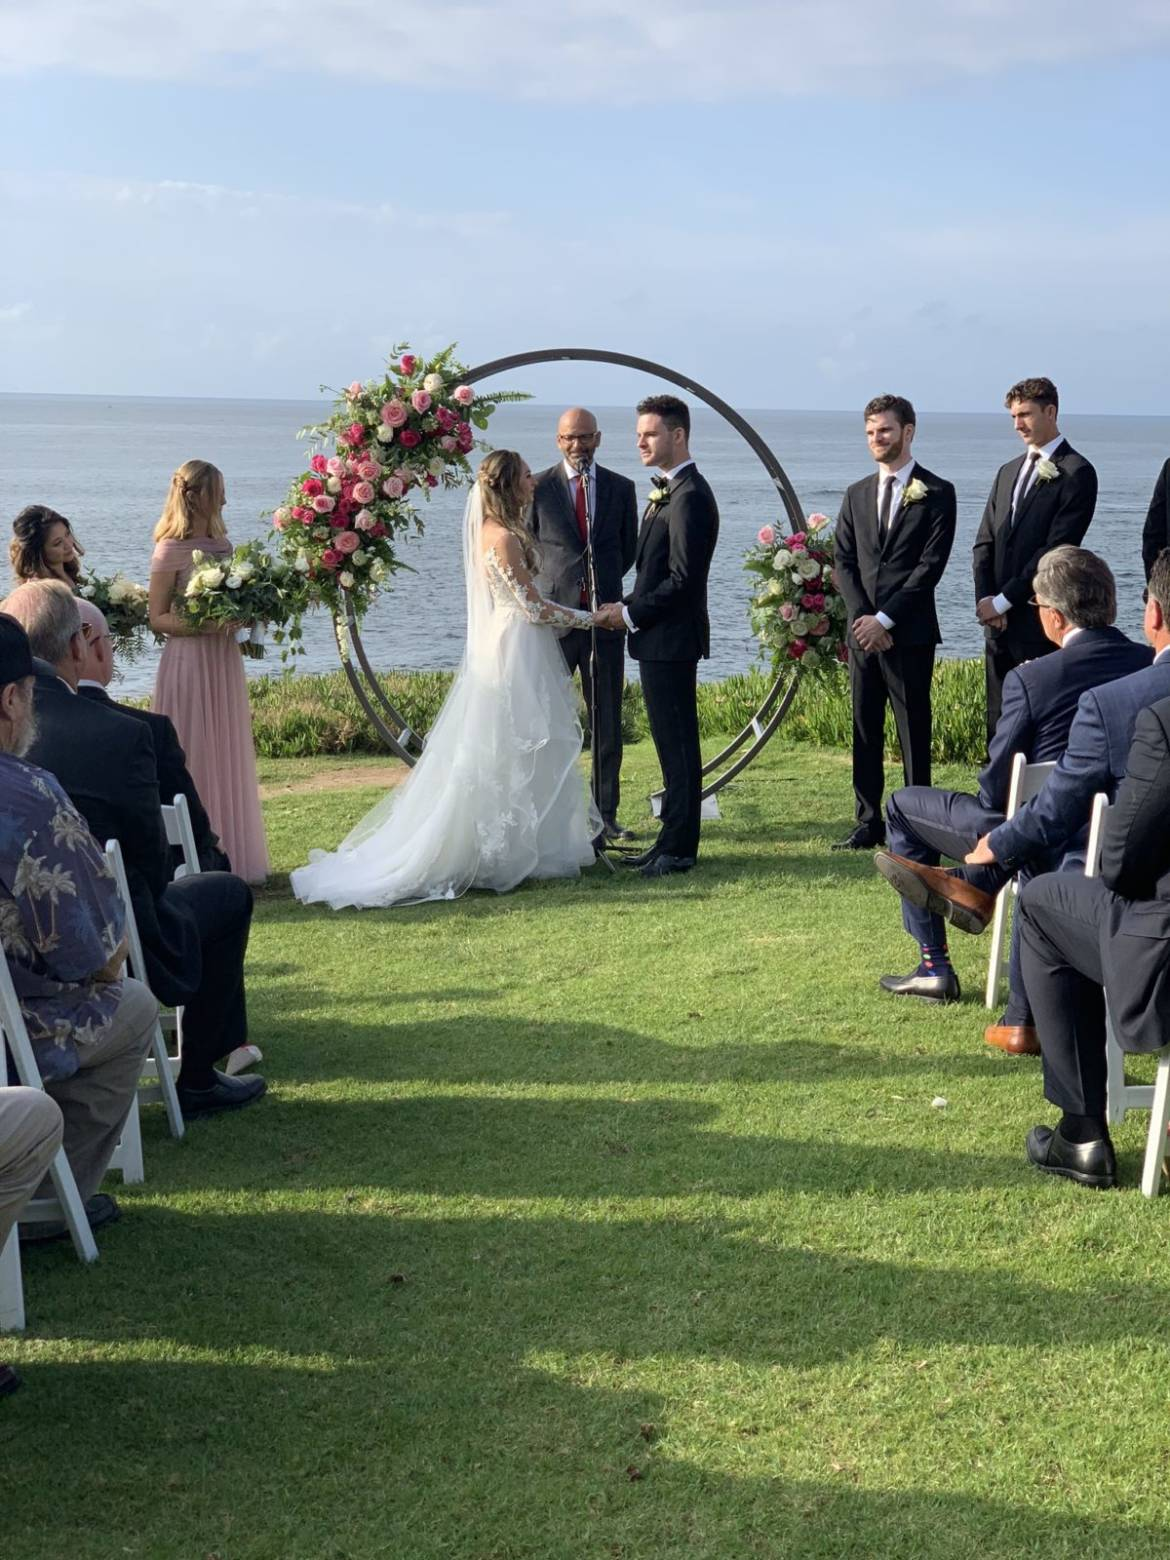 How To Execute The Best Grand Royal Weddings  An Insight To The Grand Royal Weddings